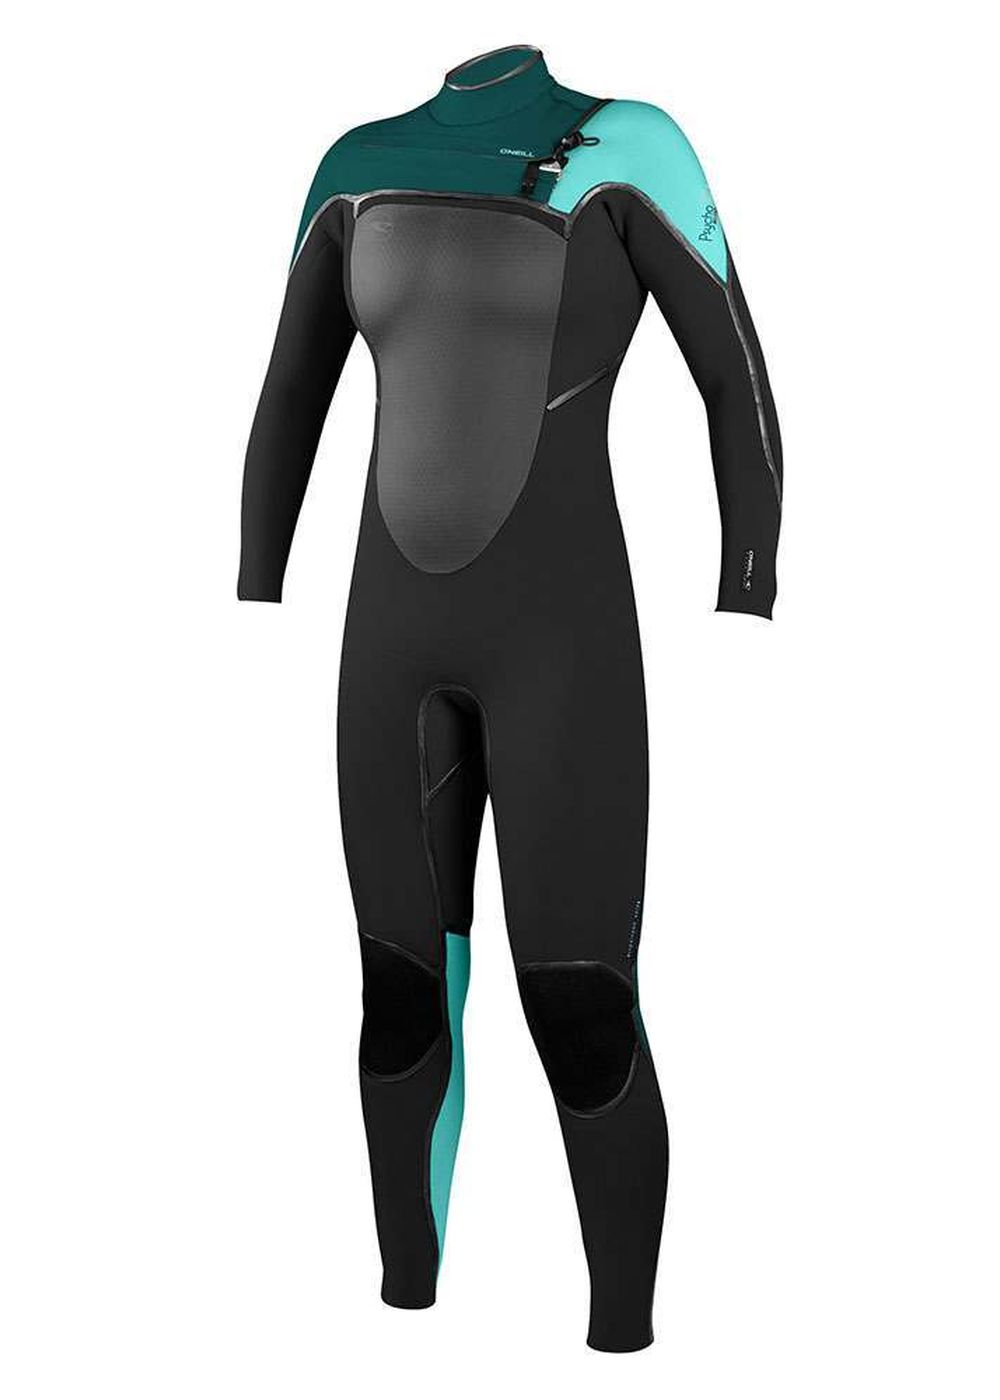 Oneill Womens Psycho Tech Fz 5/4 Wetsuit 2017 Teal Picture